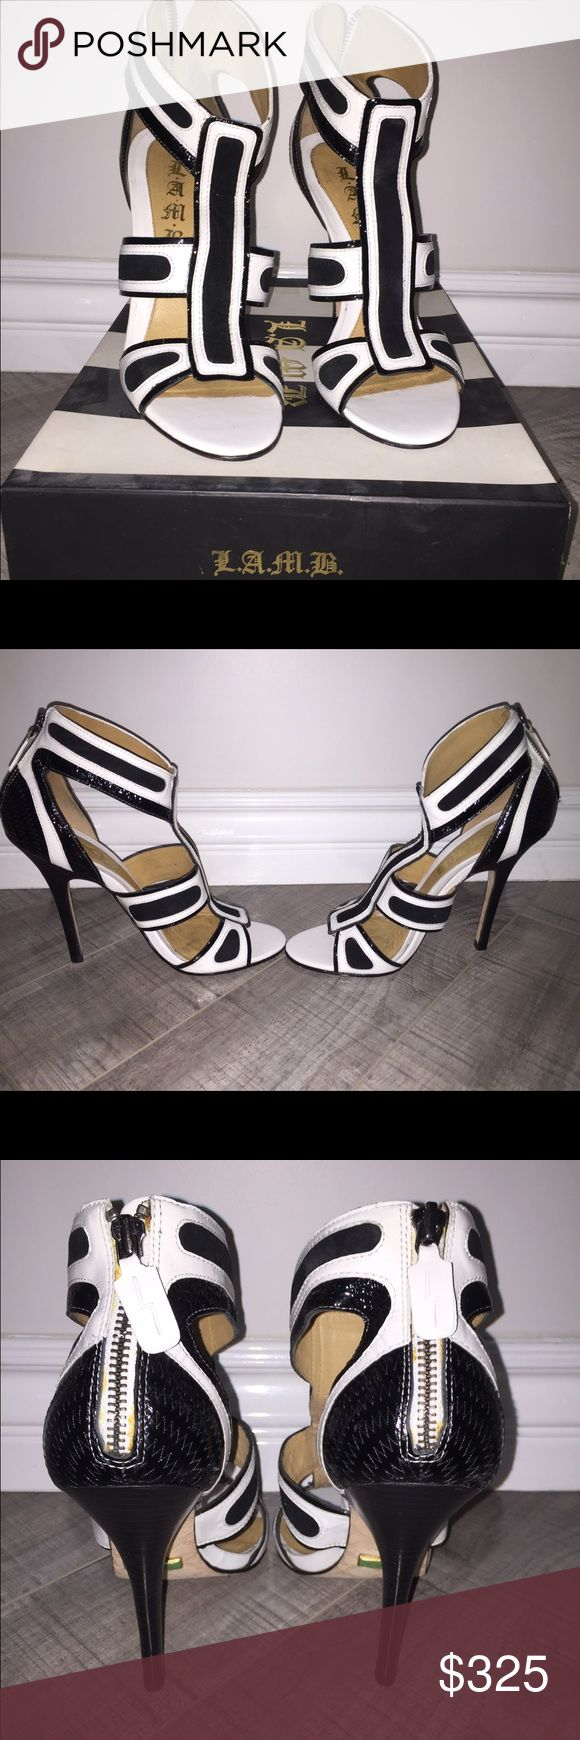 Gorgeous black and white heels Black and white leather pumps. Worn once. Great condition L.A.M.B. Shoes Heels